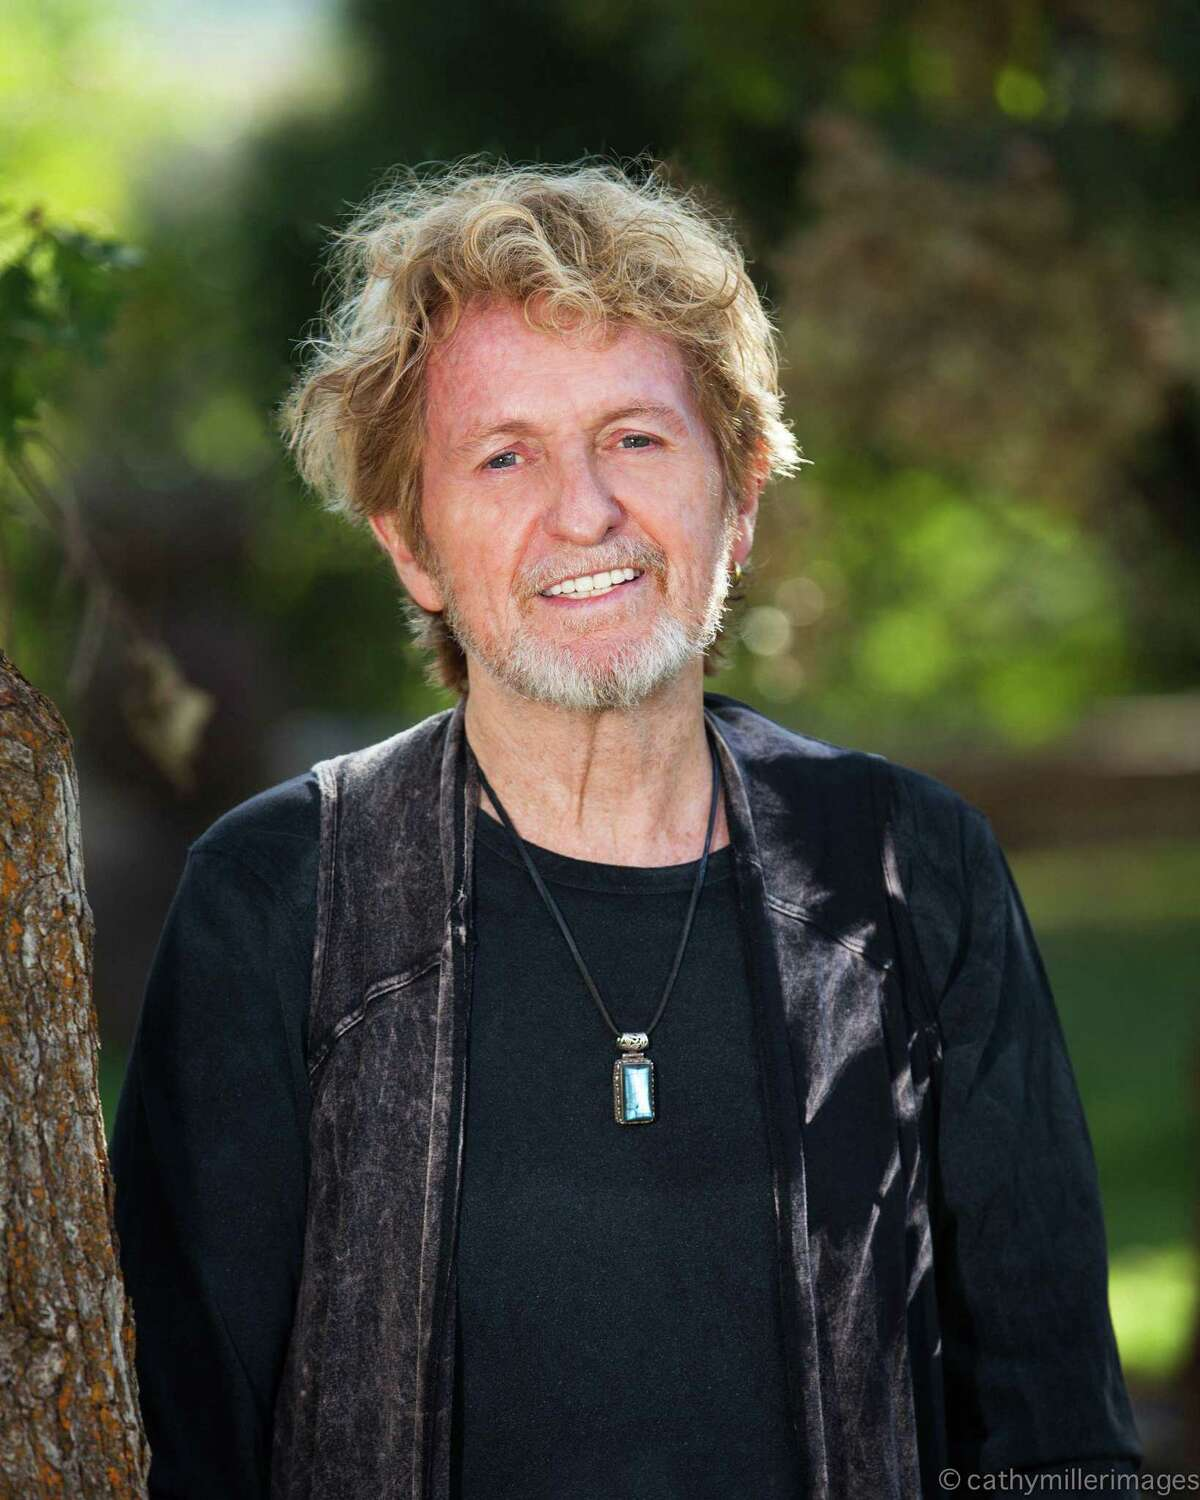 Rock and Roll Hall of Famer, Jon Anderson of YES returns to the stage of The Ridgefield Playhouse on Monday, June 29, at 8 p.m. with the Paul Green Rock Academy Band.